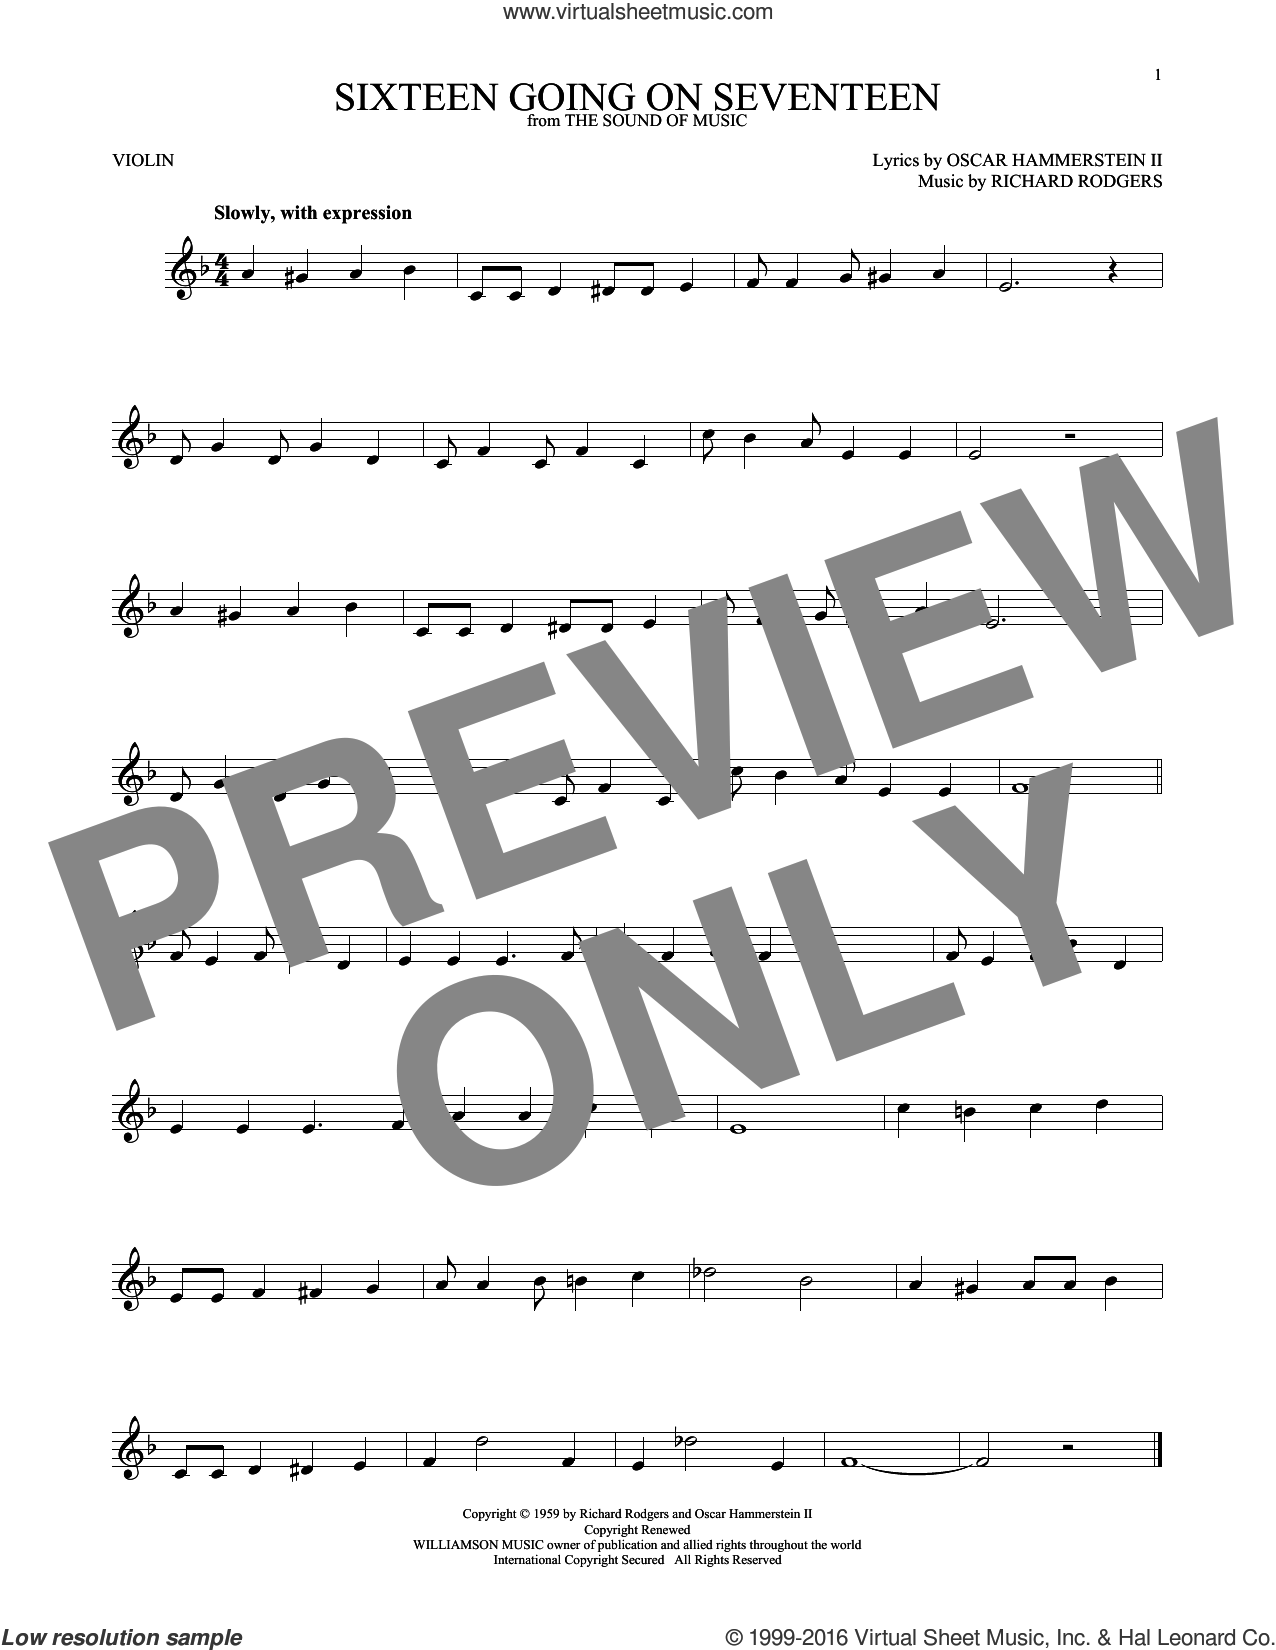 Sixteen Going On Seventeen sheet music for violin solo by Rodgers & Hammerstein, Oscar II Hammerstein and Richard Rodgers, intermediate skill level